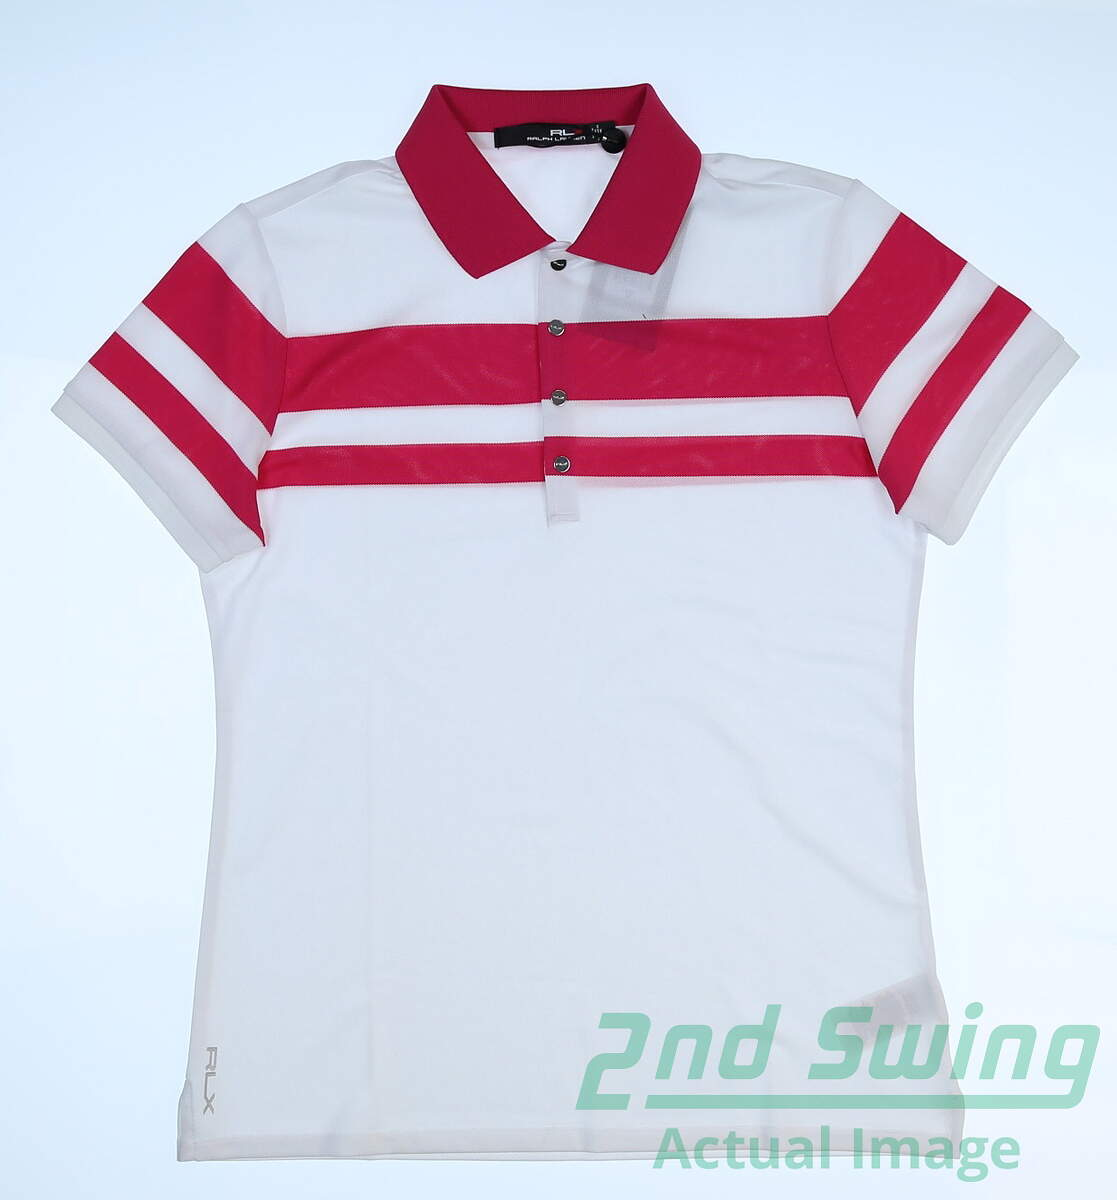 New Womens Ralph Lauren Rlx Polo Small S Whitepink Msrp 90 2nd